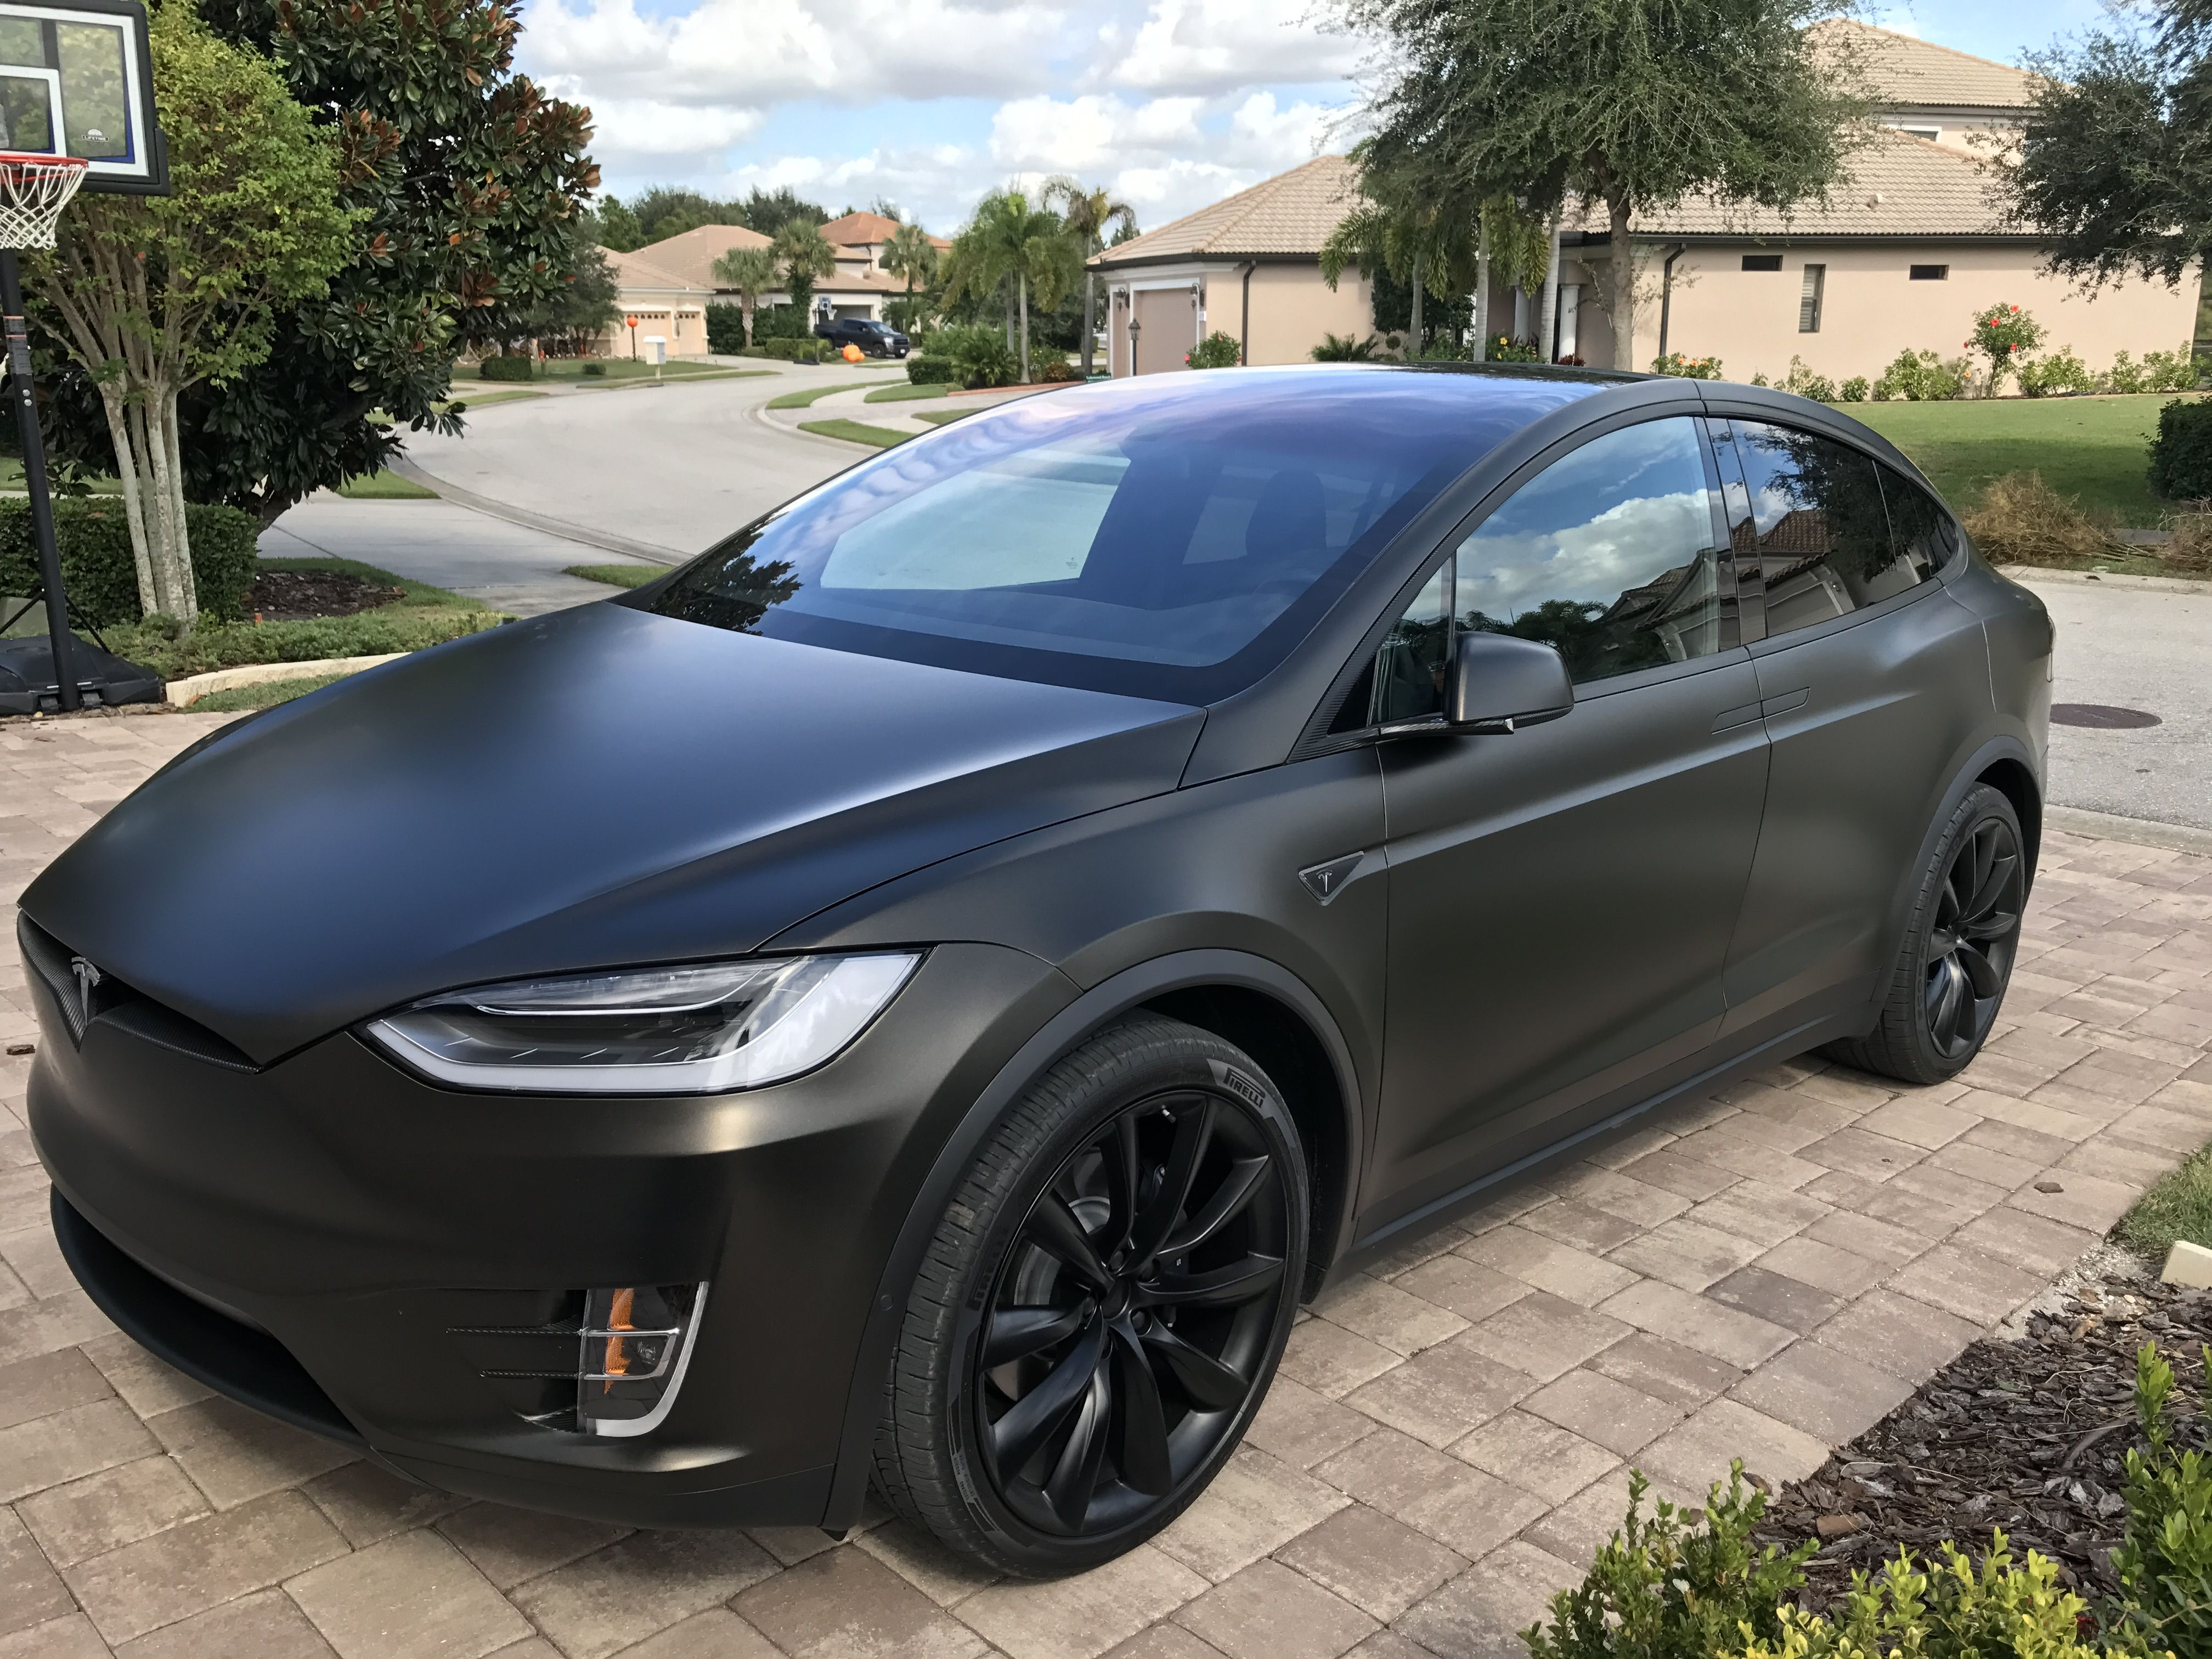 hight resolution of tesla model x black satin gold dust vinyl wrap with carbon fiber accents on chrome and all 6 seat backs imgur